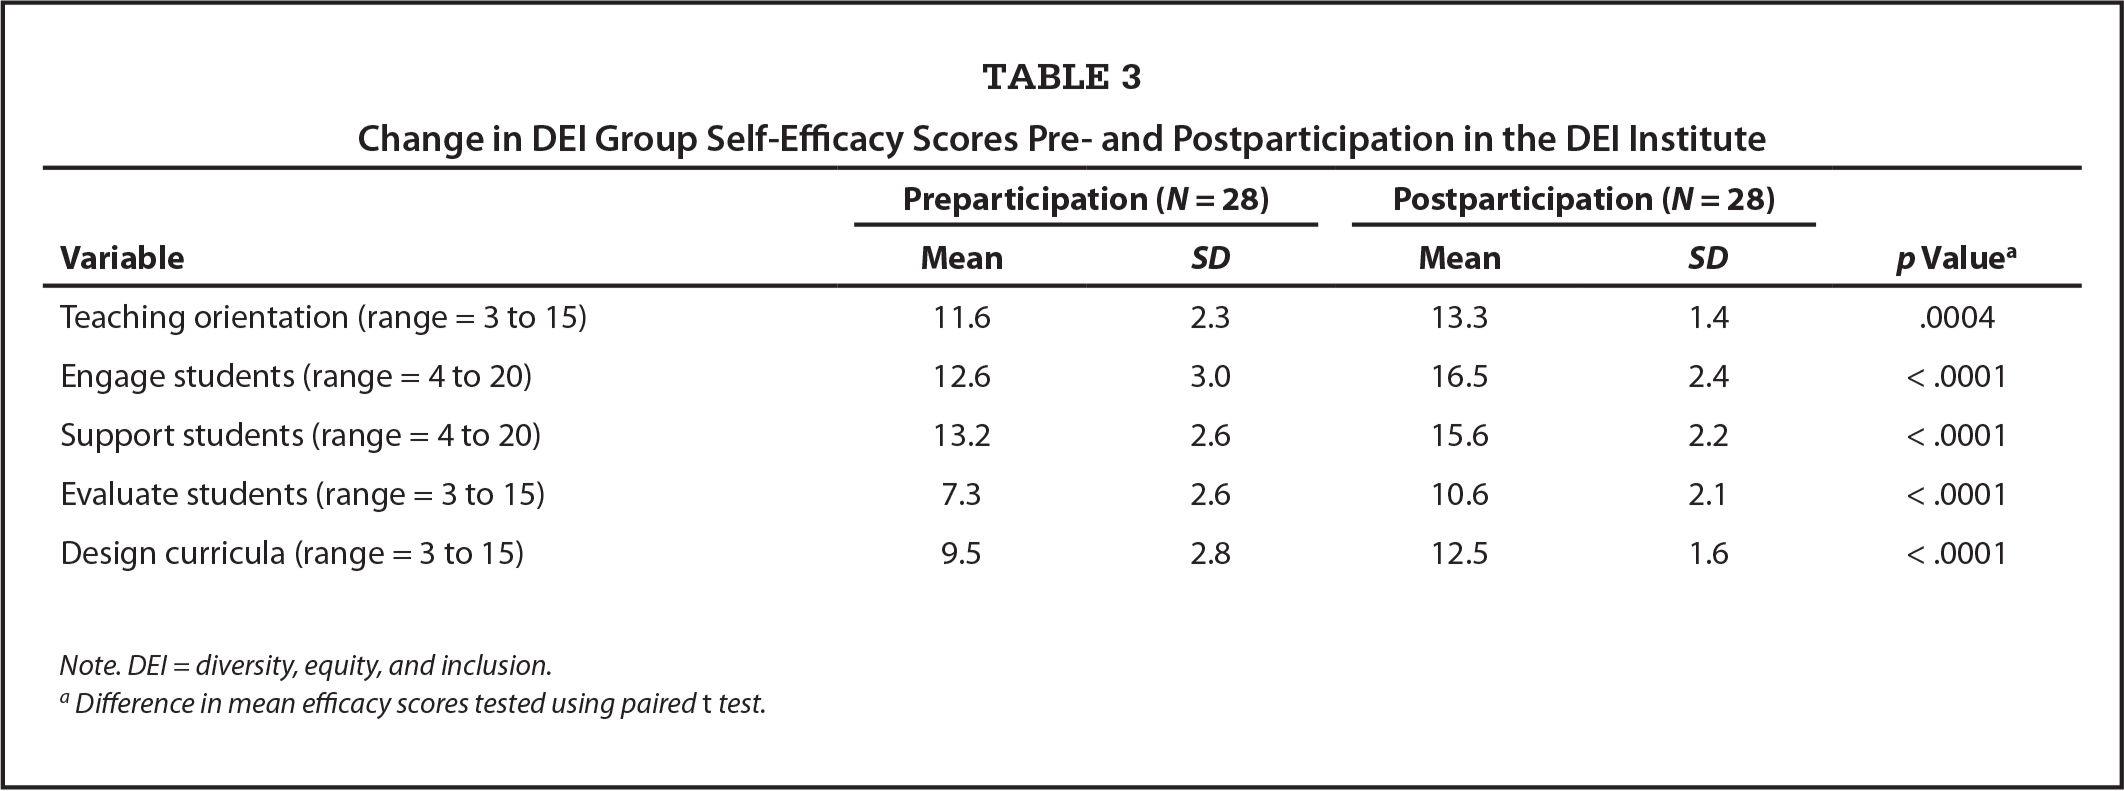 Change in DEI Group Self-Efficacy Scores Pre- and Postparticipation in the DEI Institute